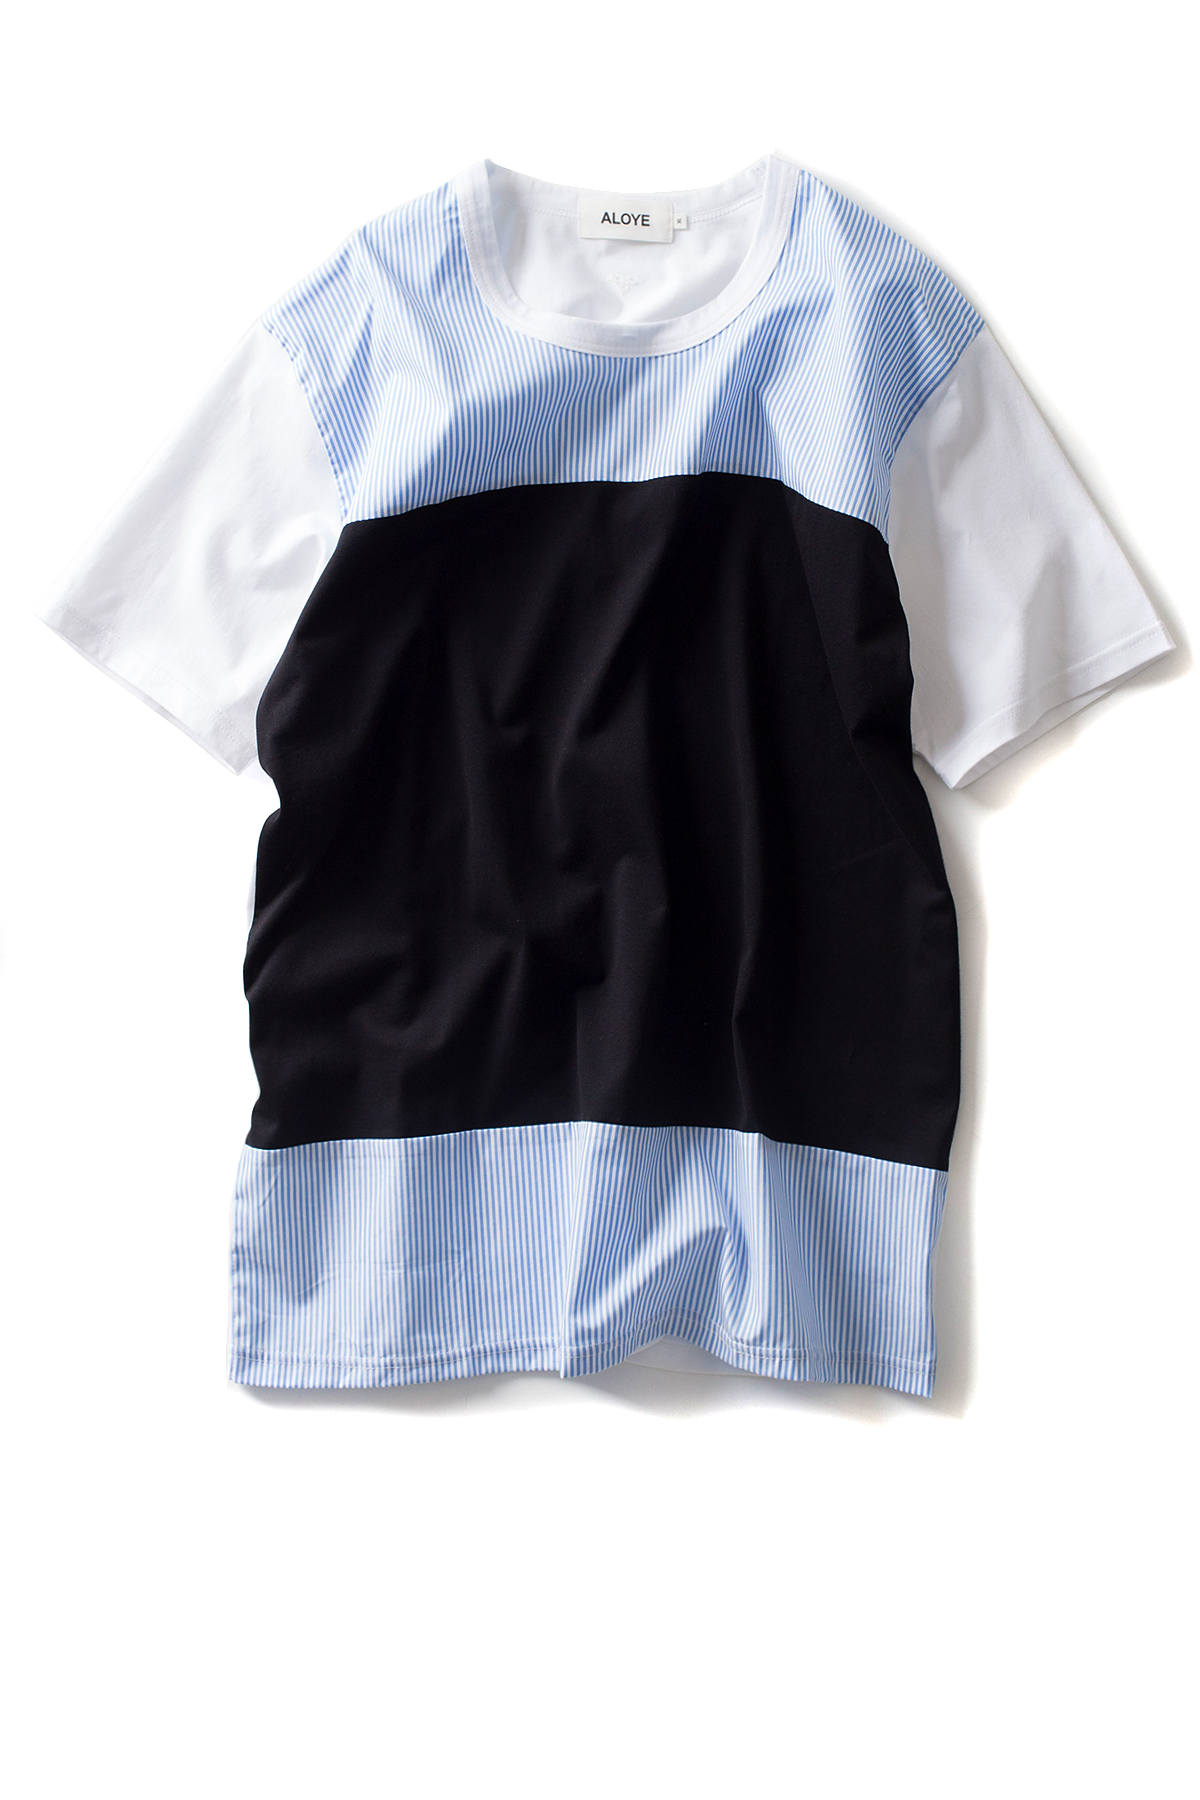 ALOYE : Shirt Fabrics - Short Sleeve T-Shirt (L.Blue / Black)